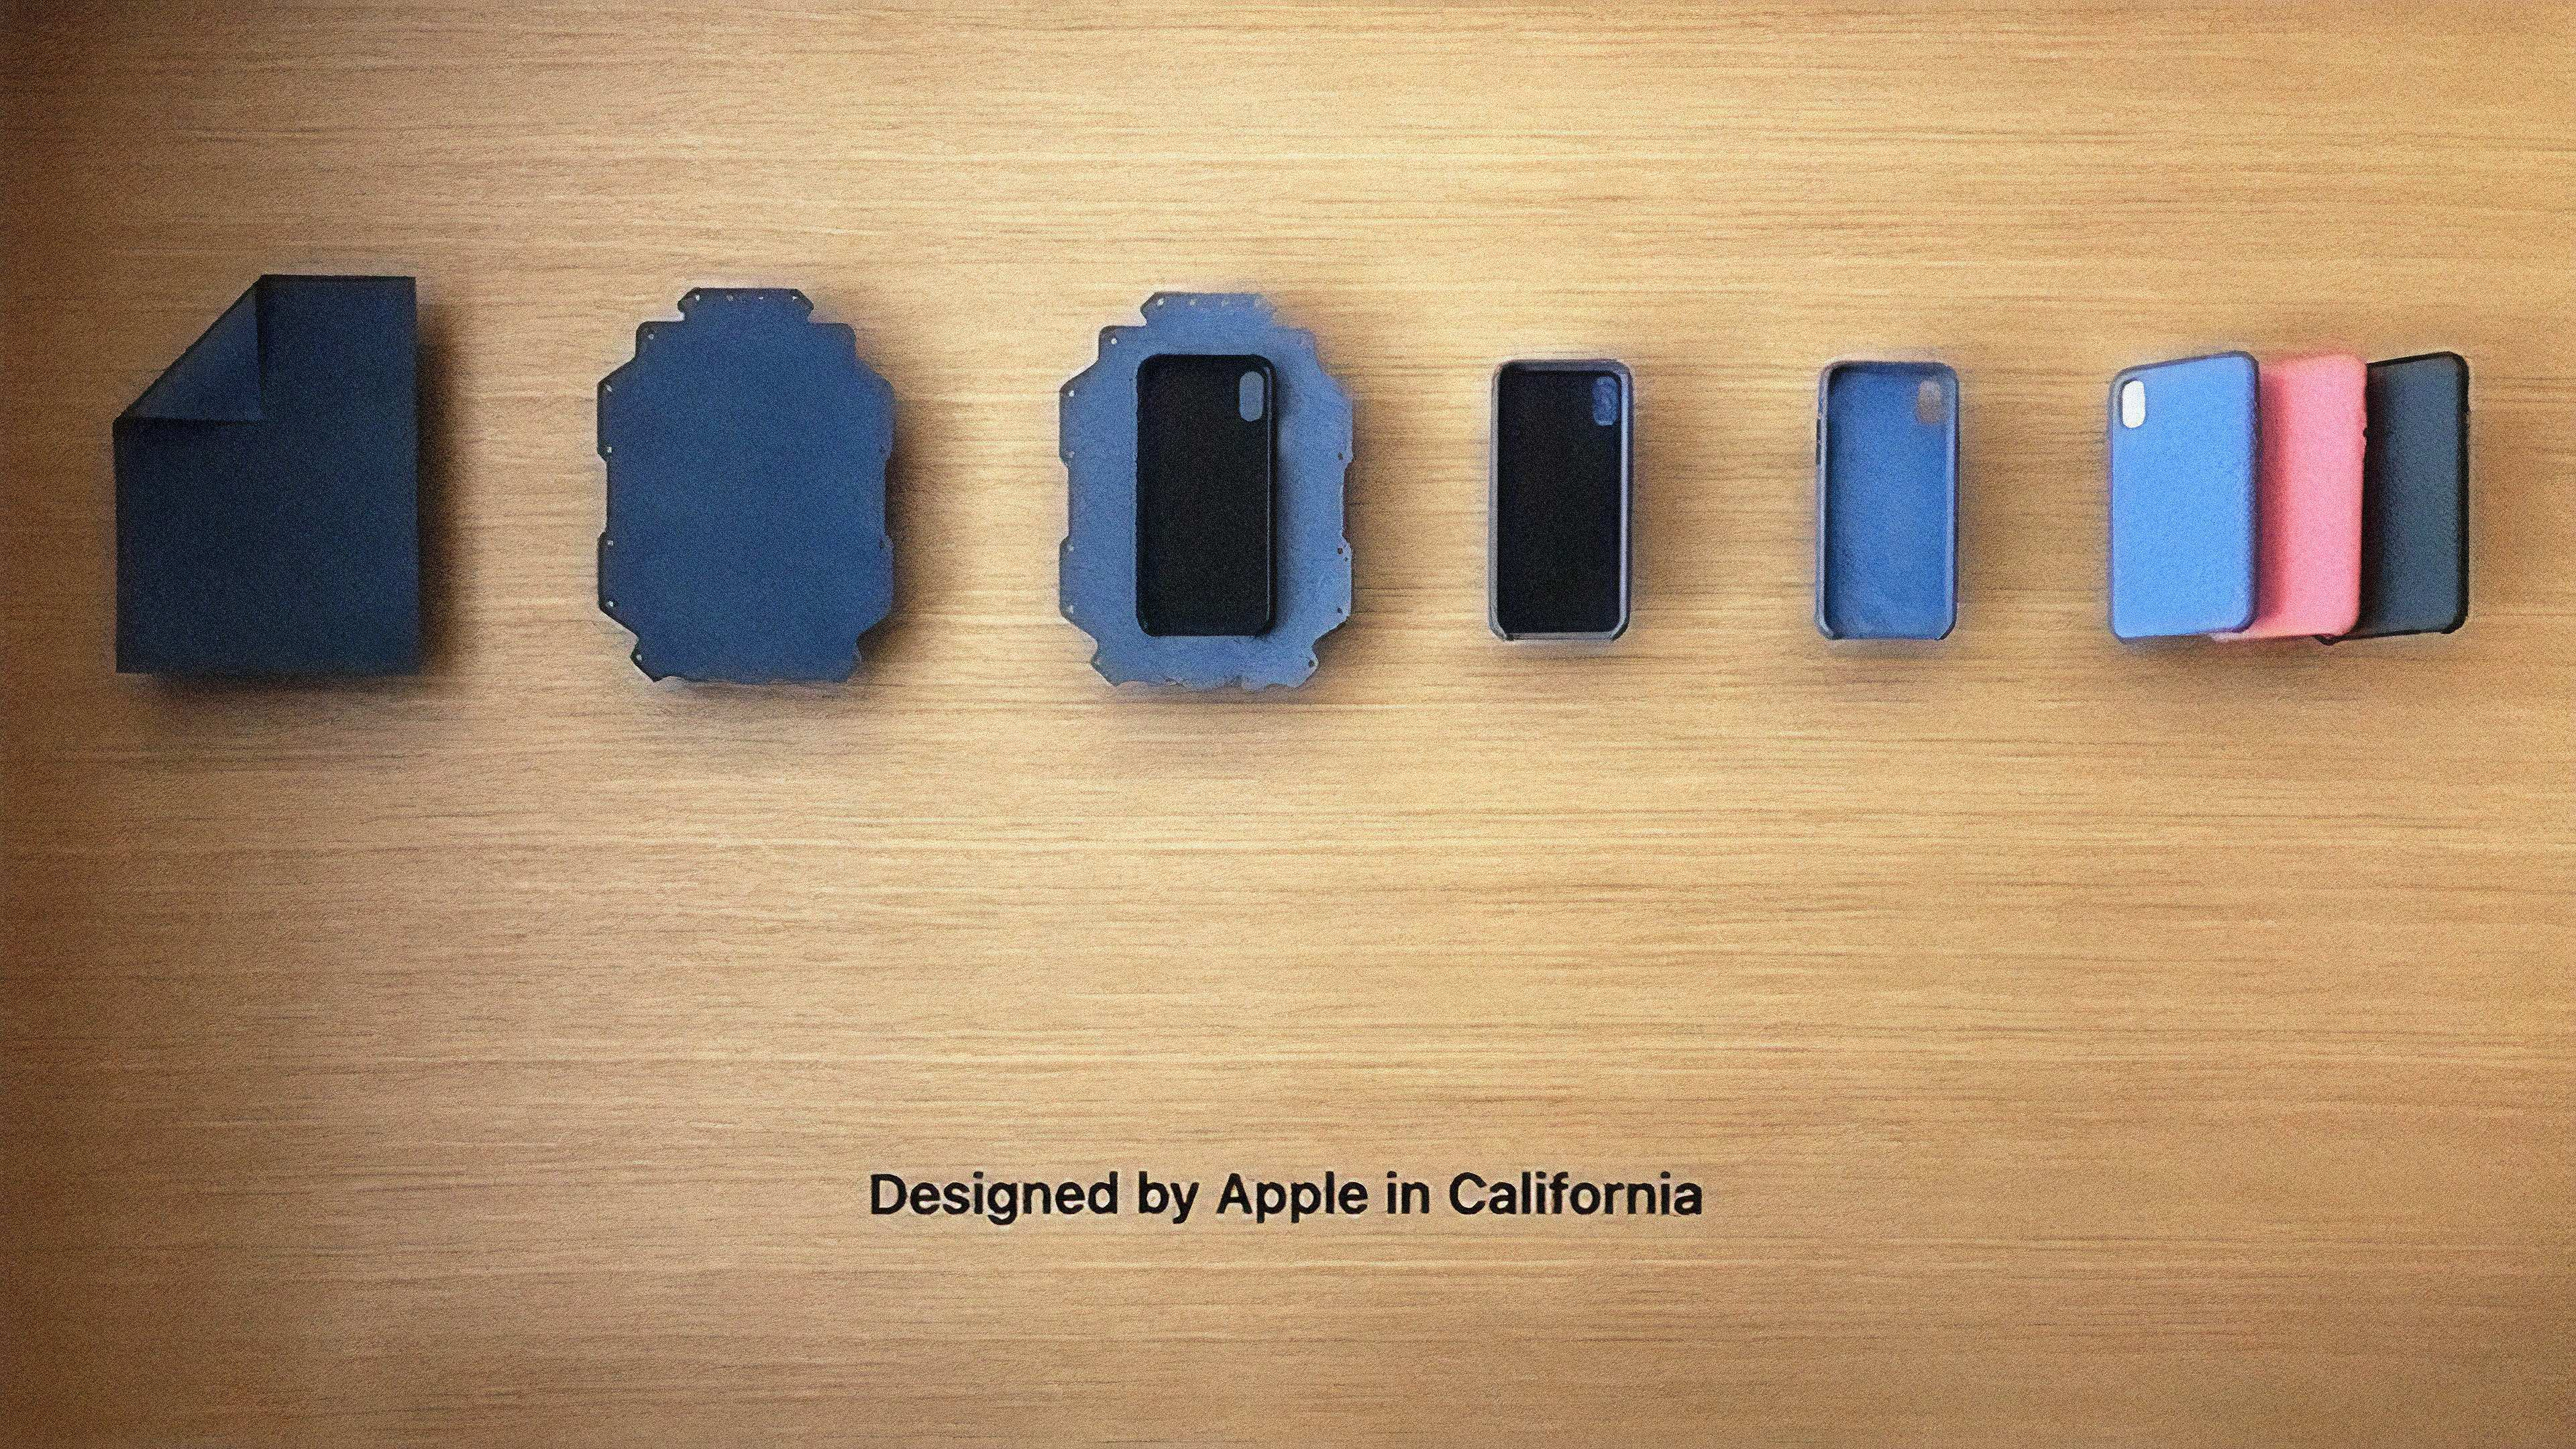 apple park visitor center adds new one of a kind avenues depicting apple watch series 4 iphone xs in exquisite detail